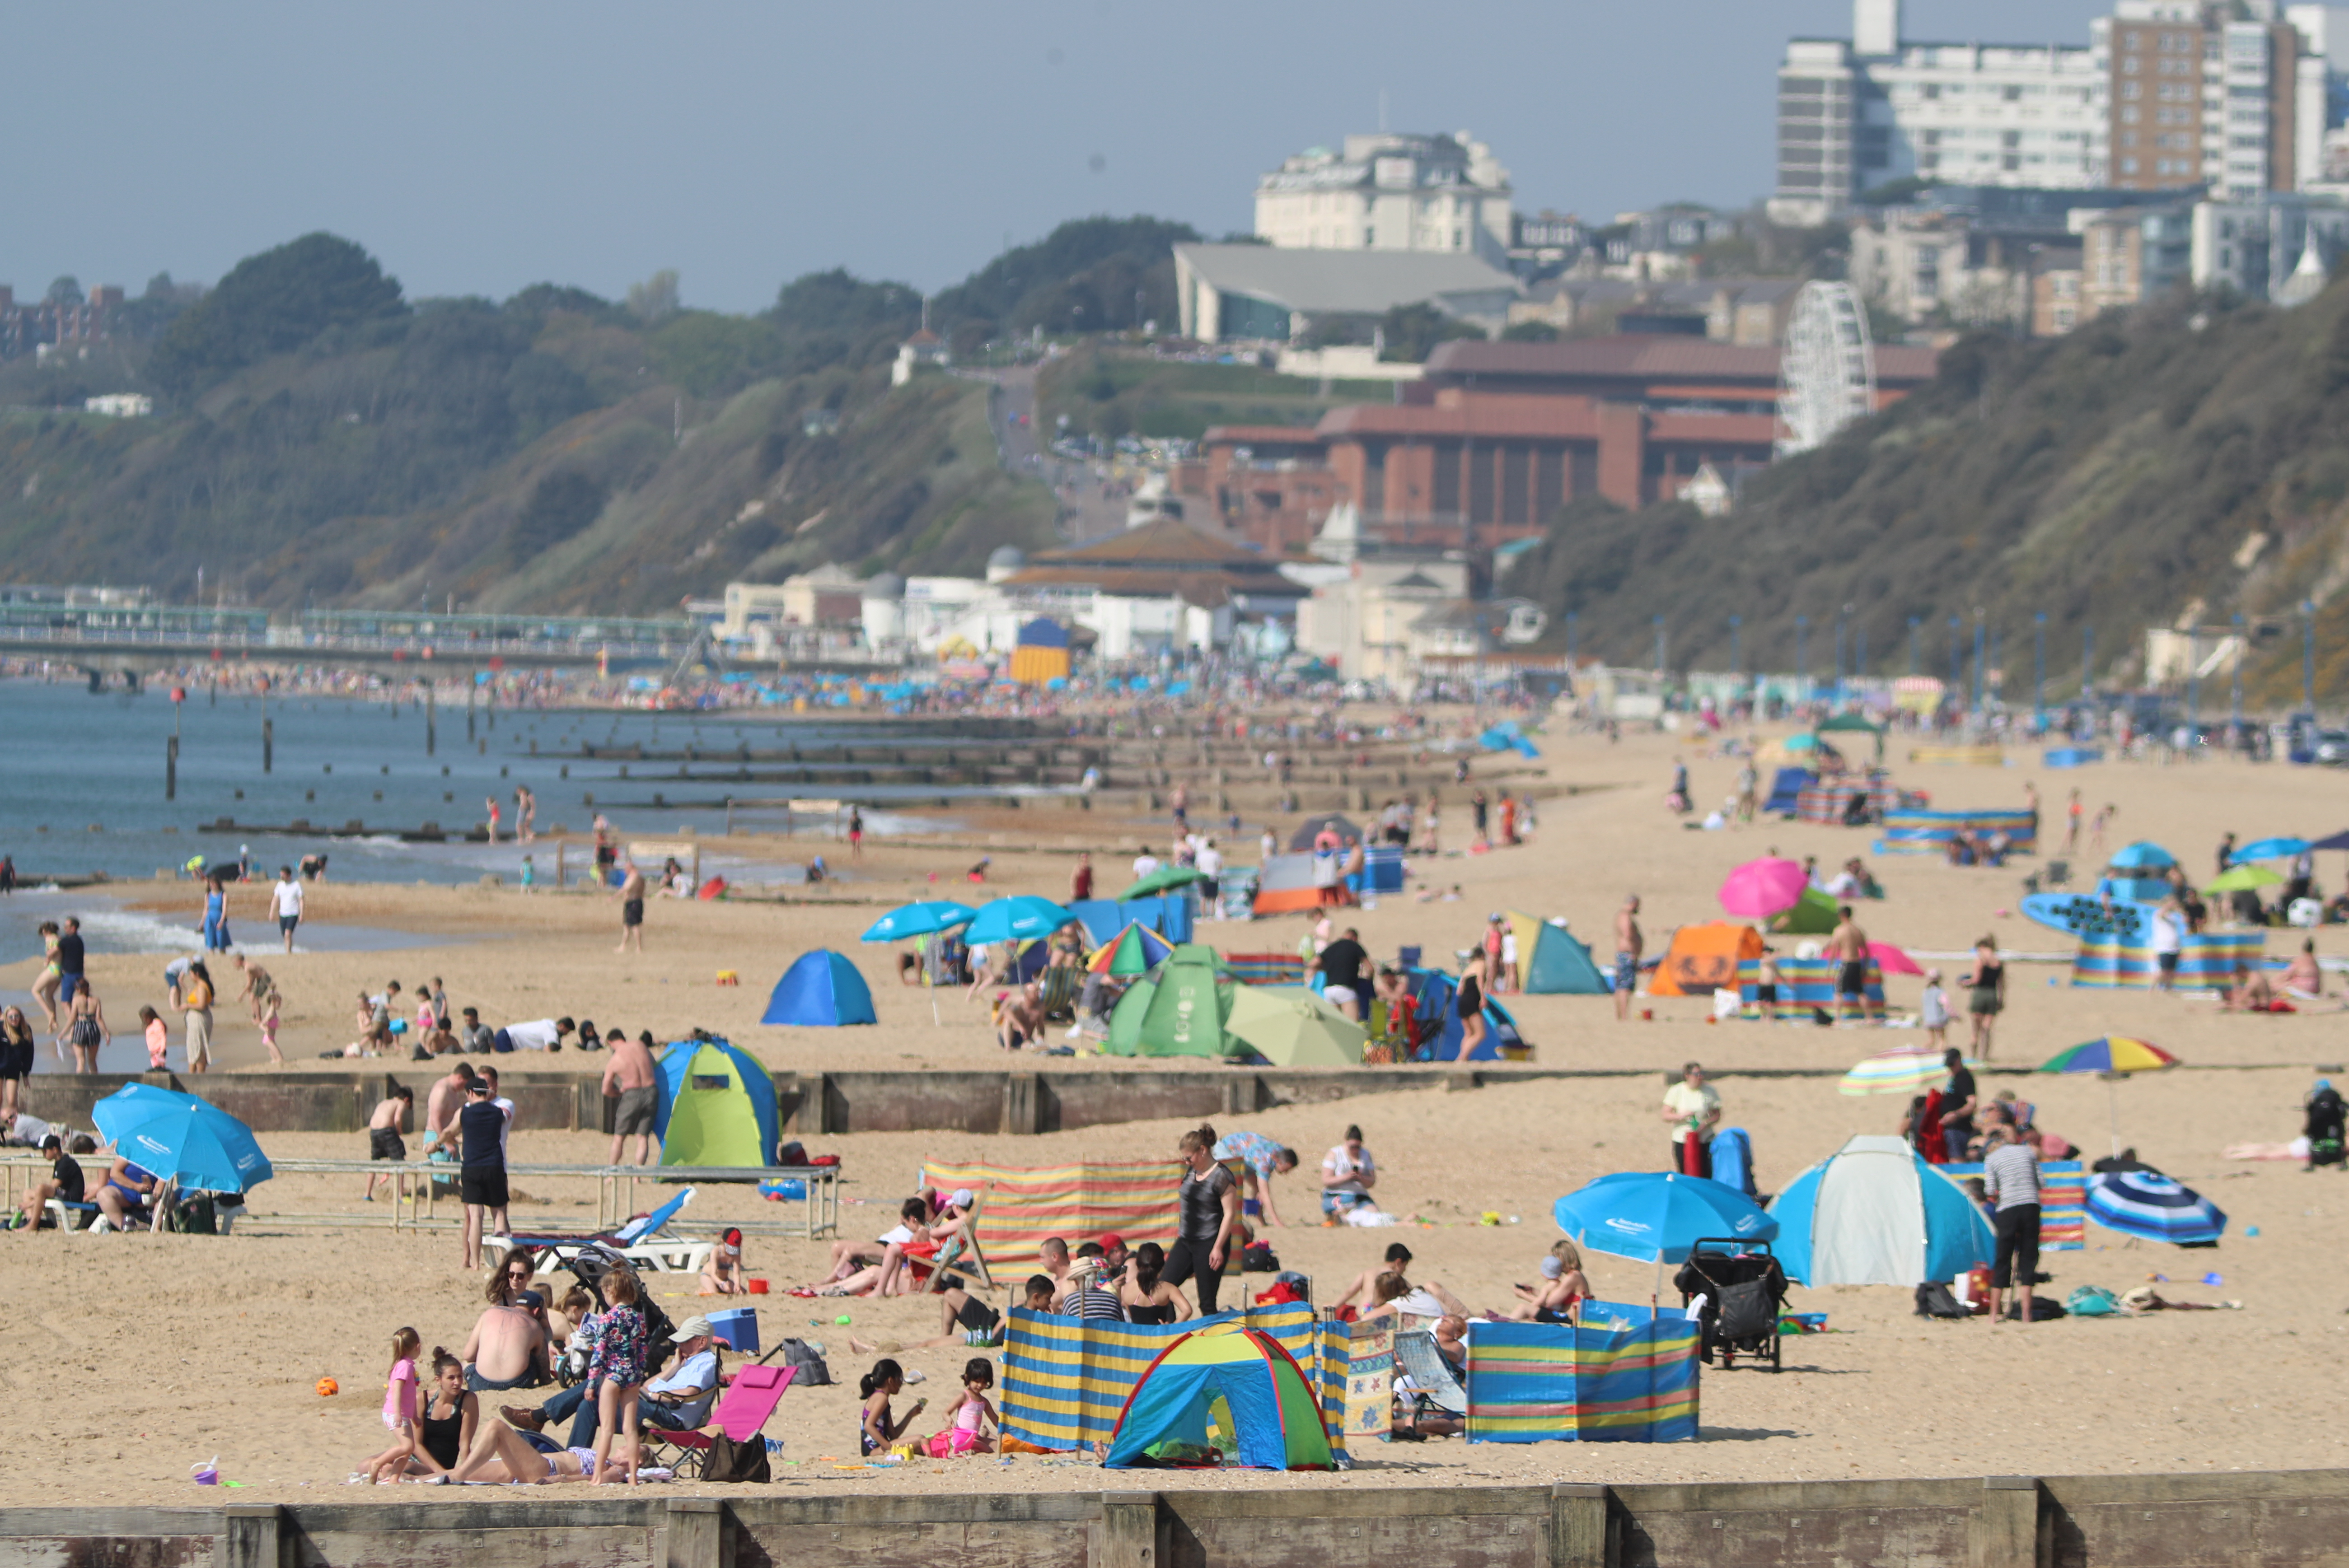 We've had a run of lovely weather recently and it looks set to stick around for a few more days. Credit: PA